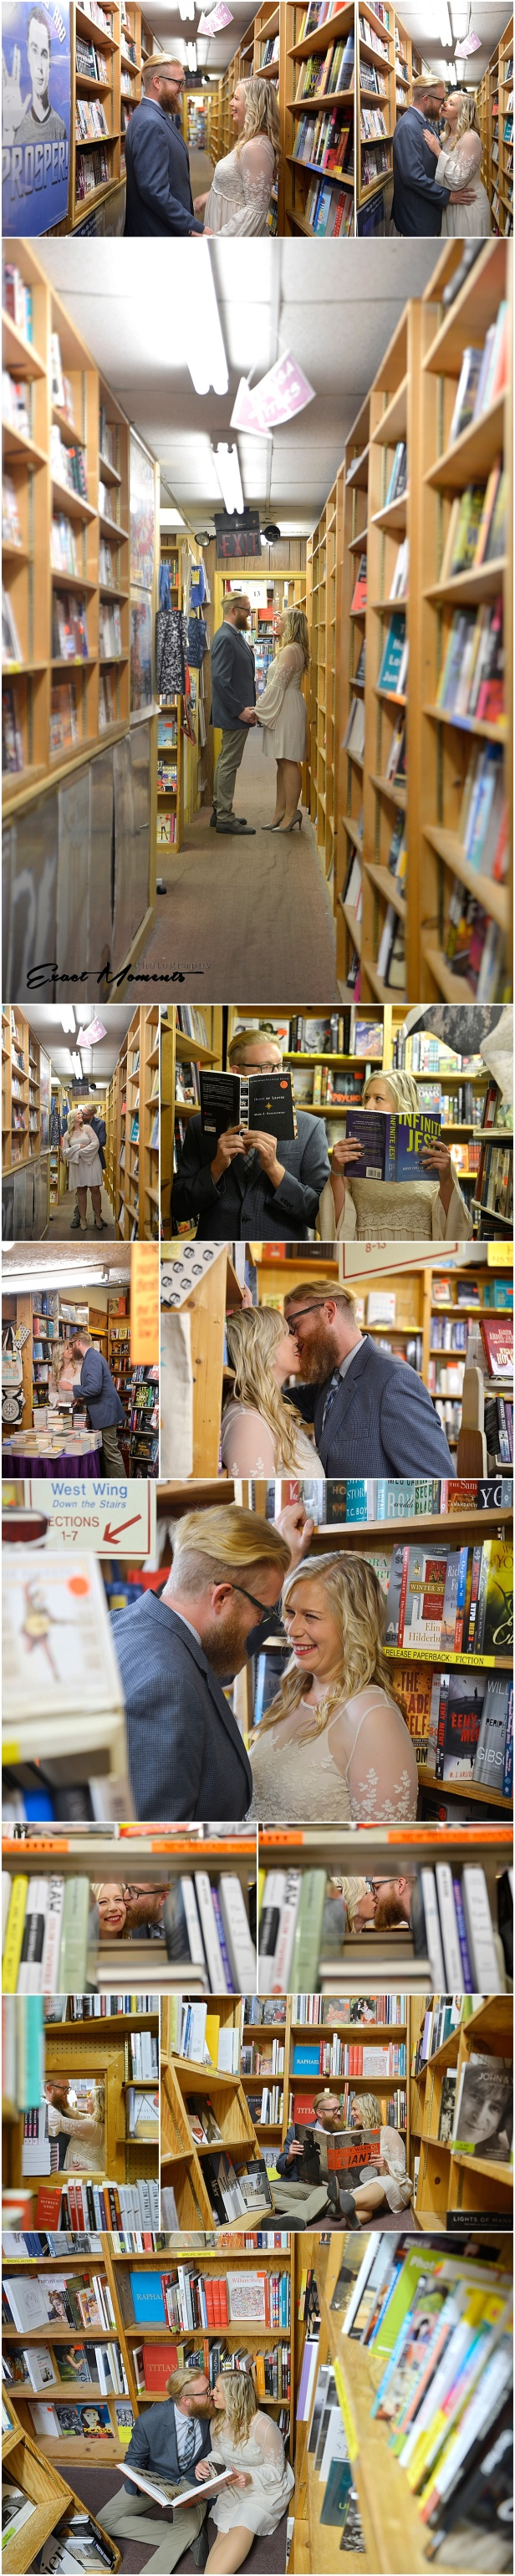 Engagement Session Book Loft German Village